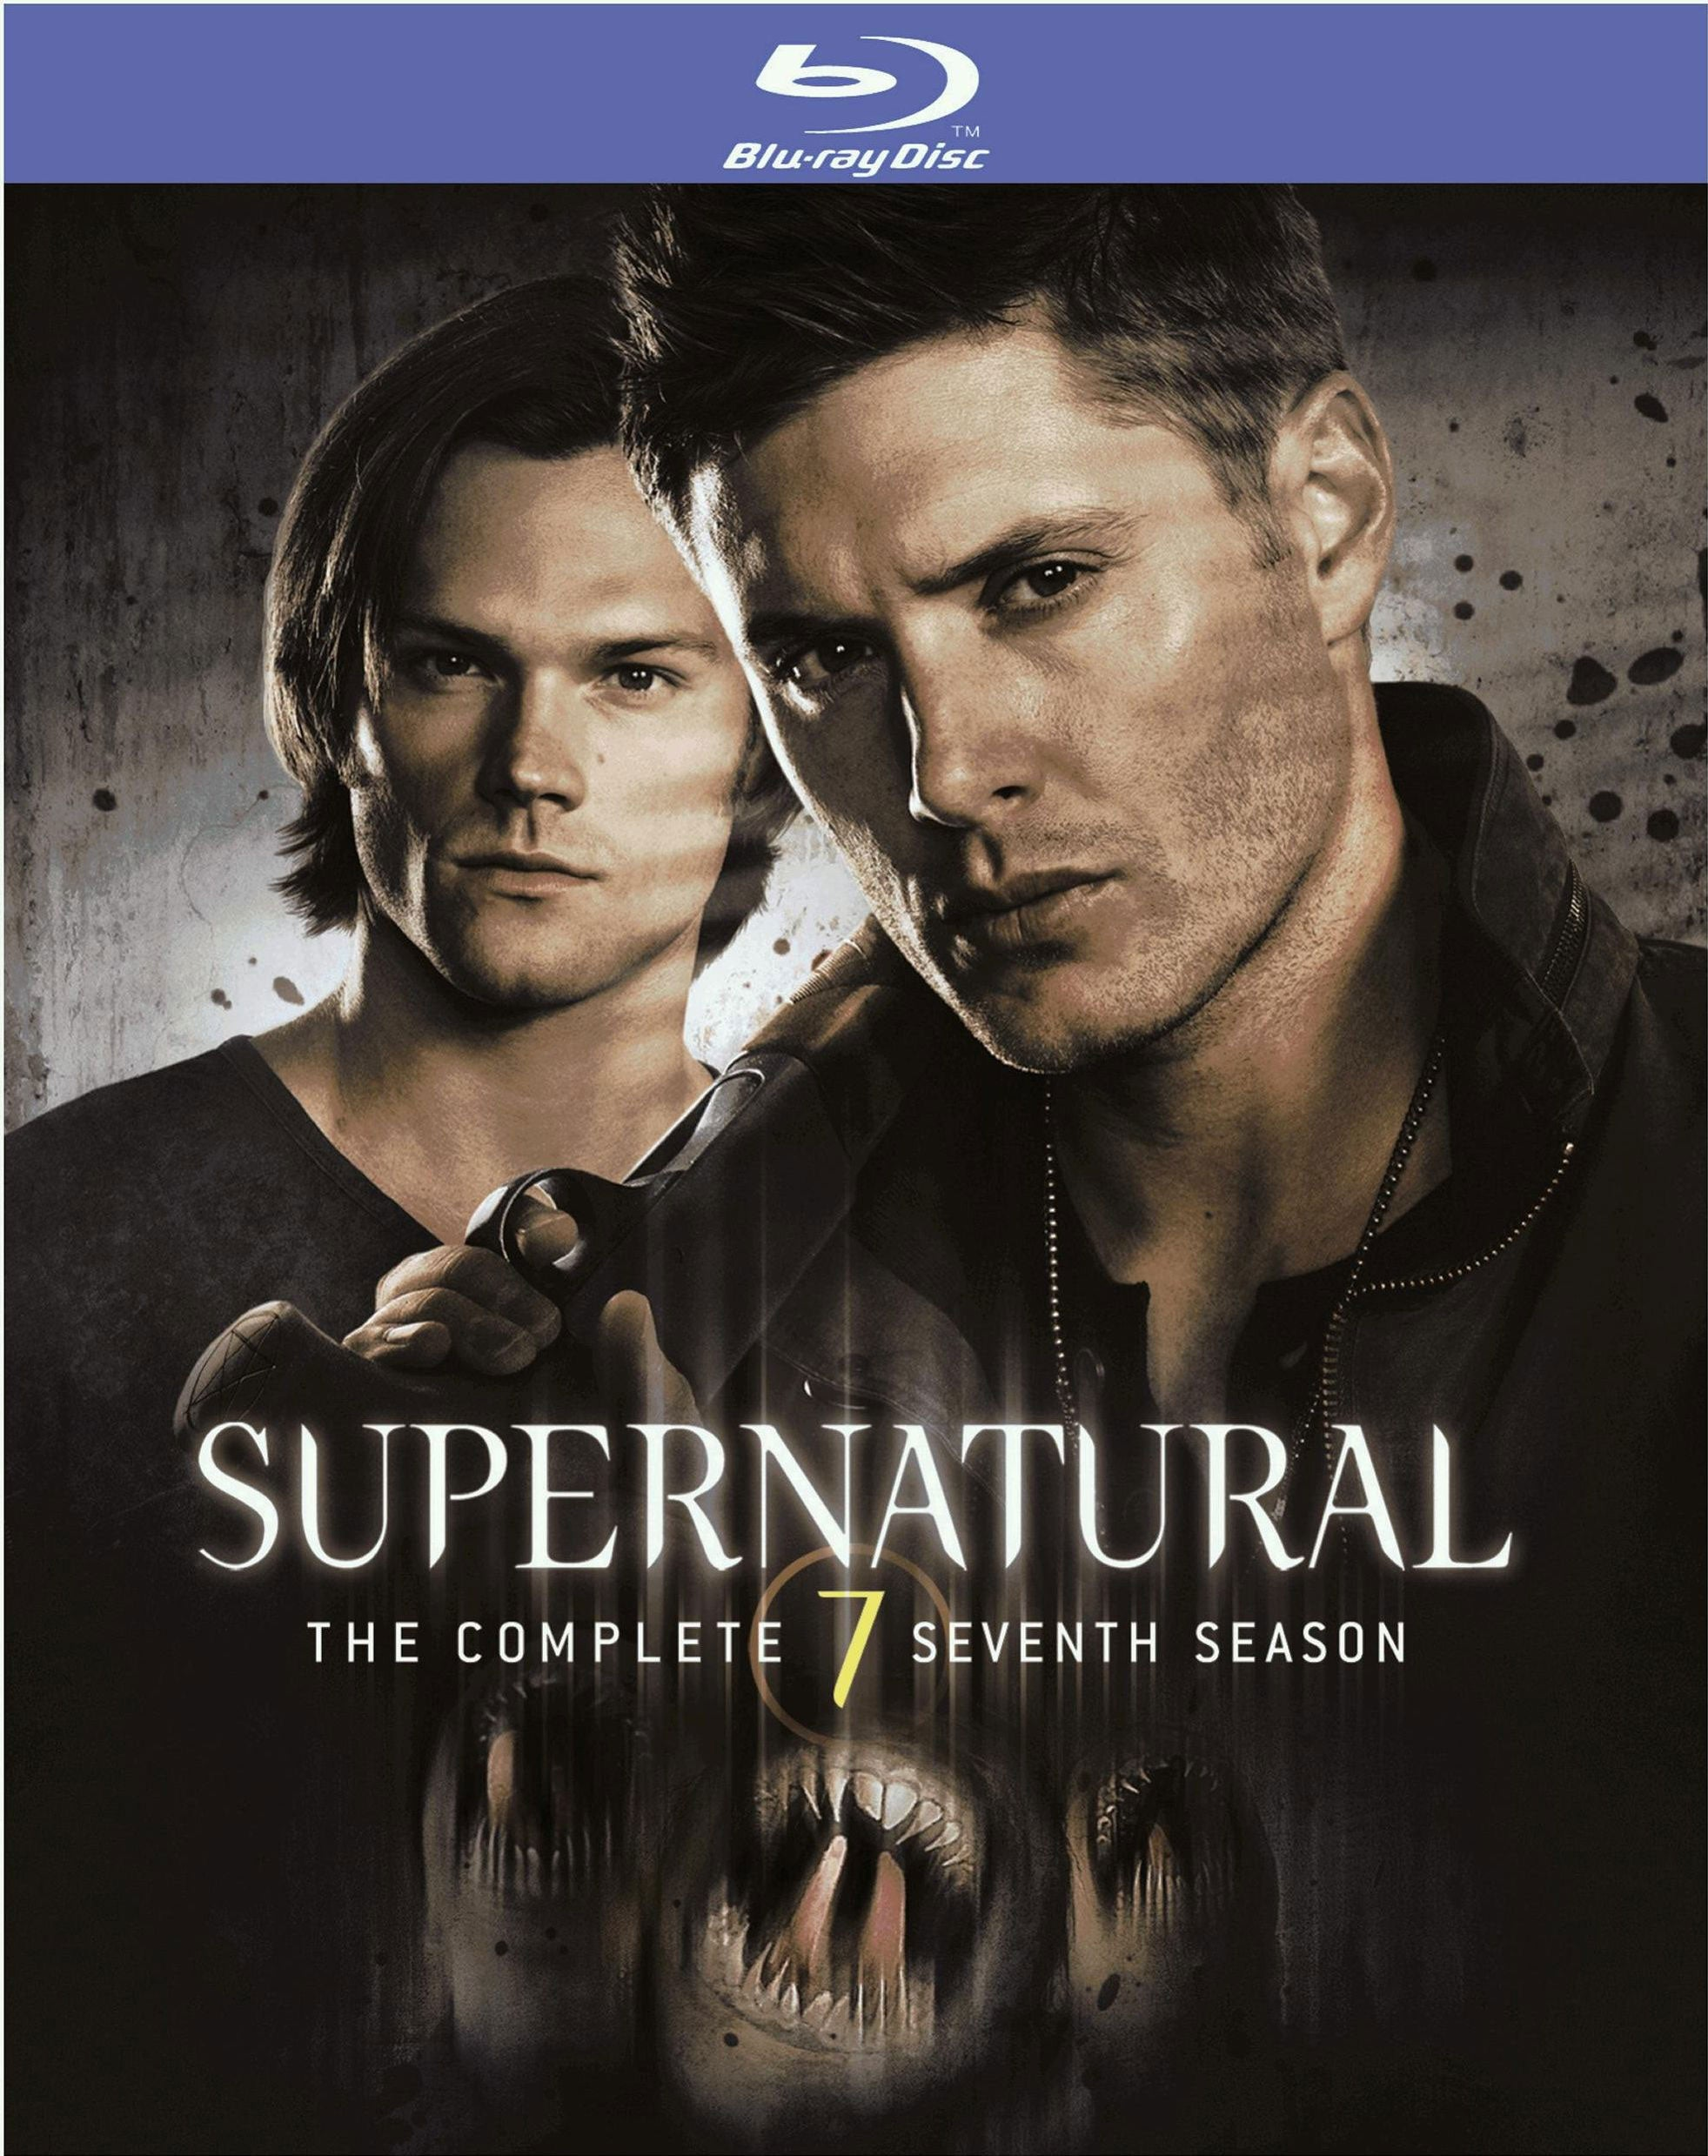 Supernatural: The Complete Seventh Season (Blu-ray Disc)